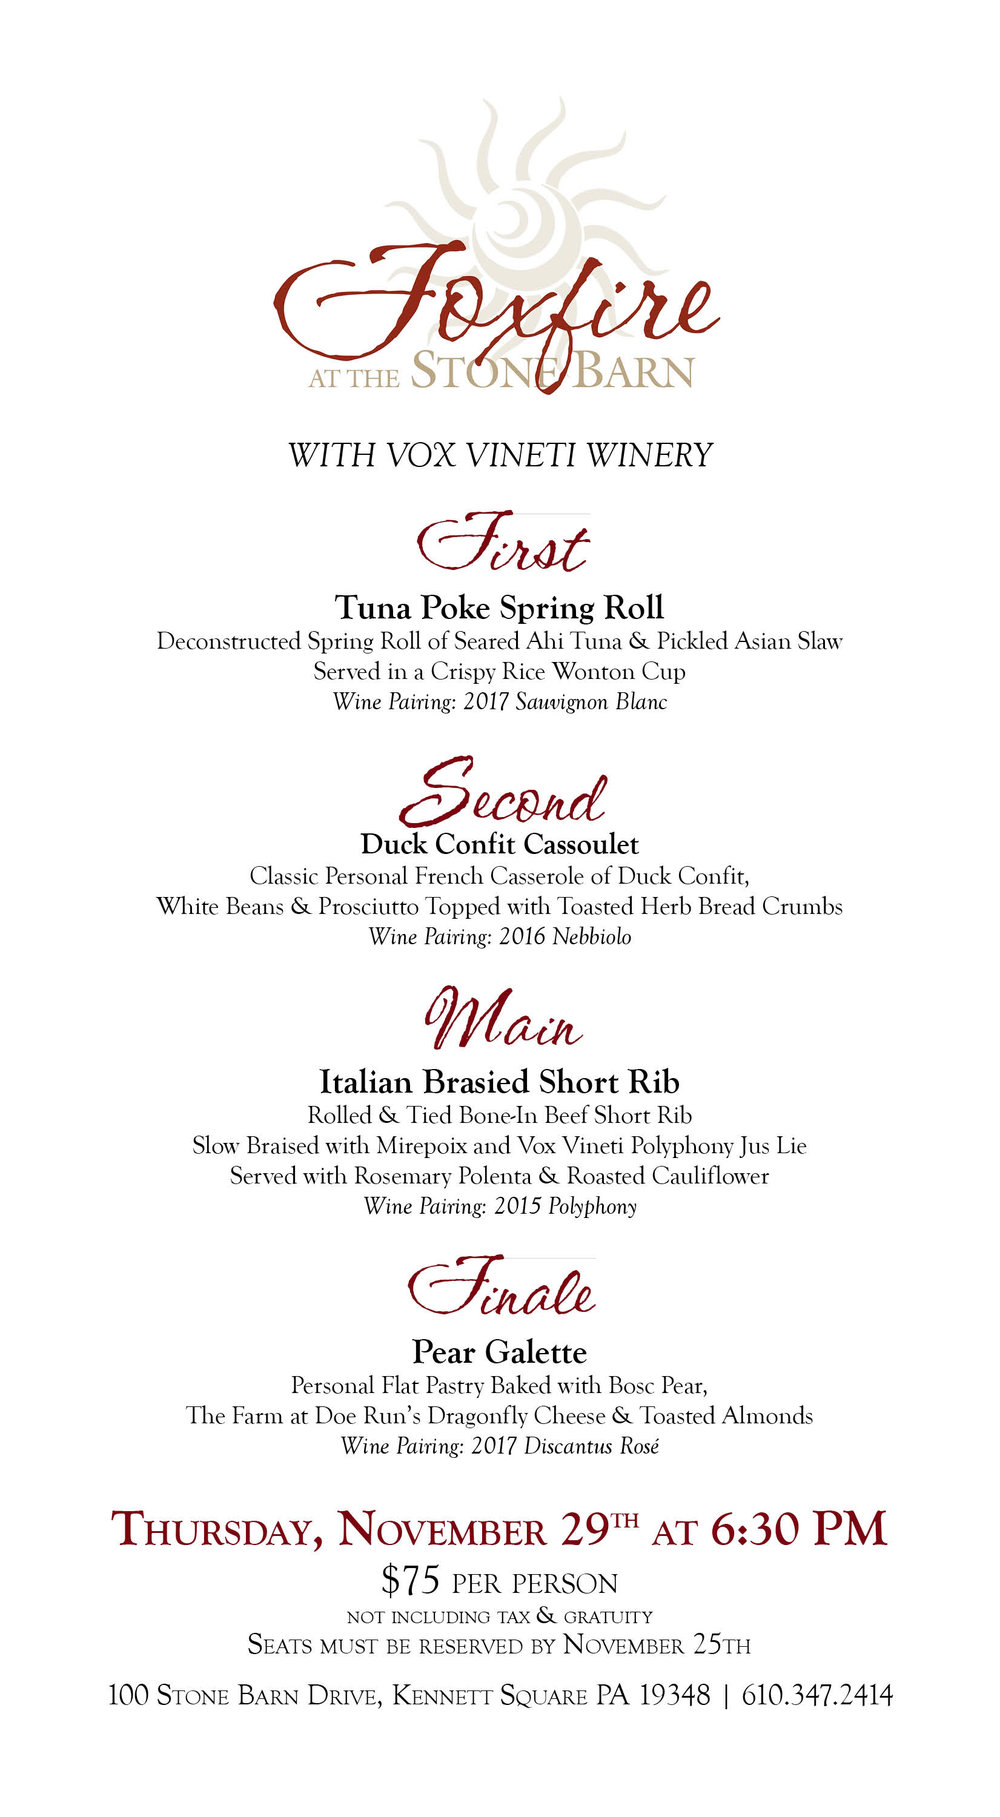 Vox Vineti Wine Dinner Menu.jpg